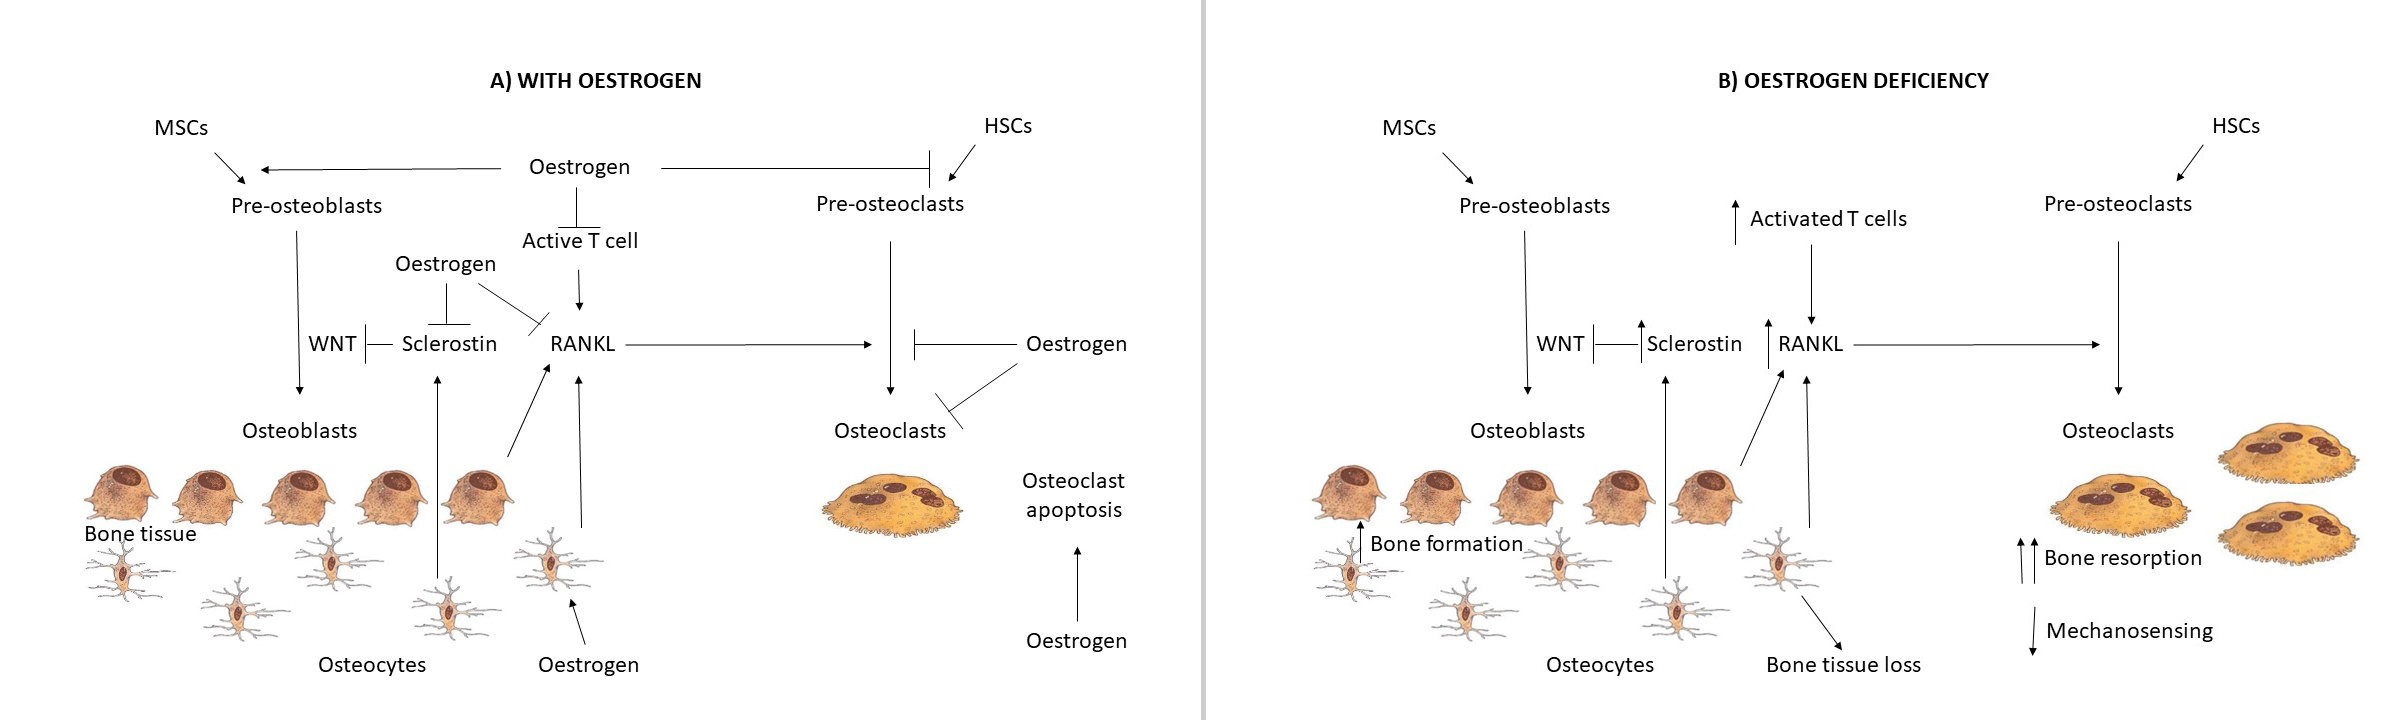 Role of oestrogen in bone remodeling